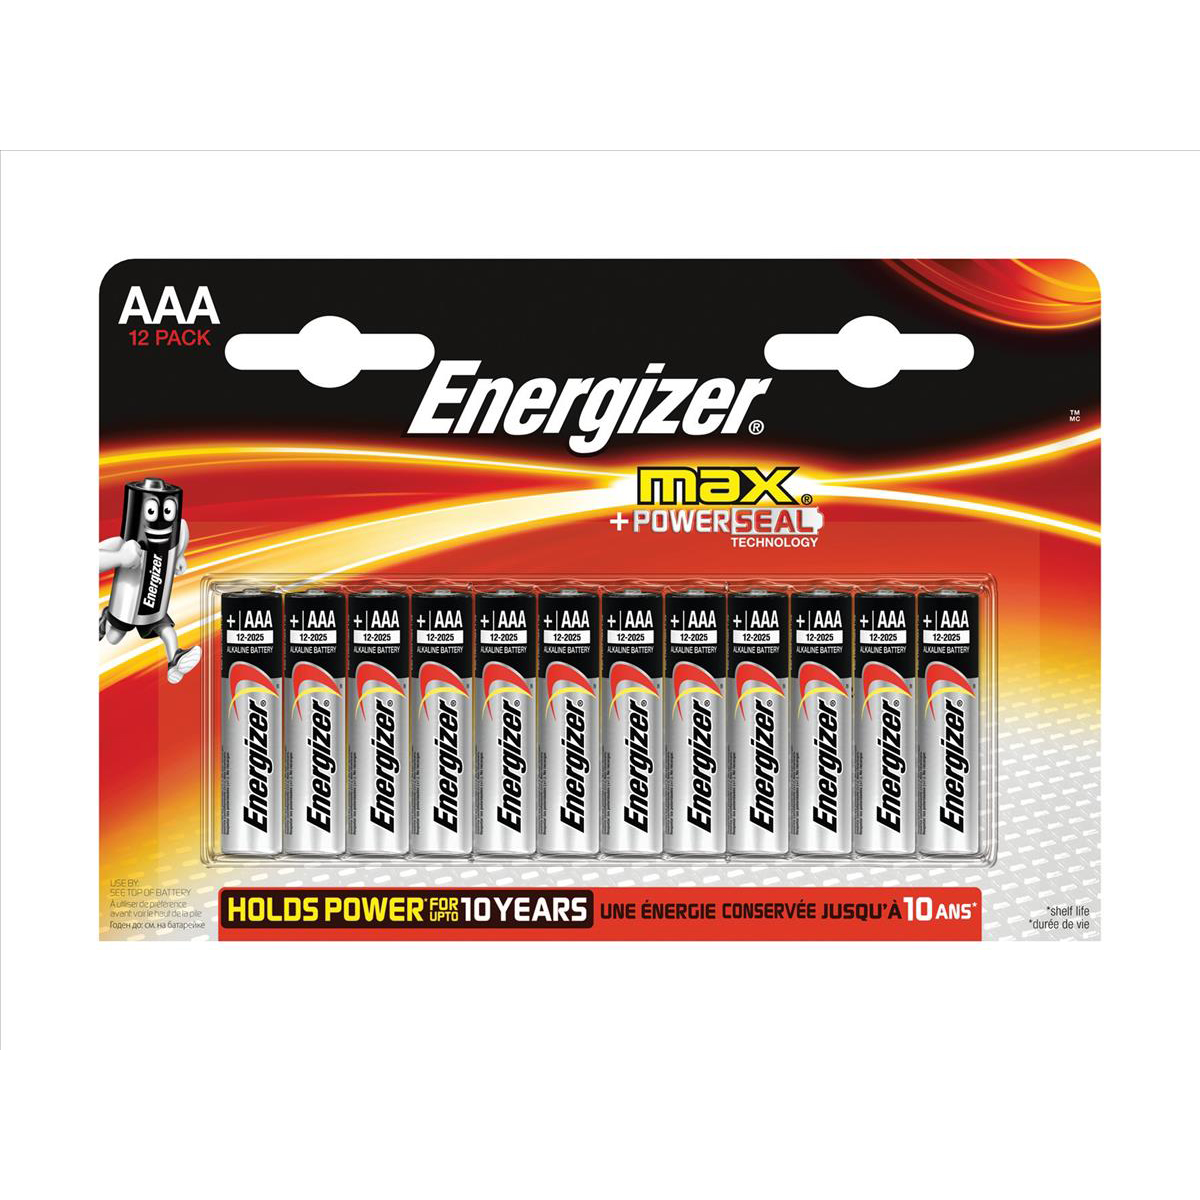 Energizer Max AAA/E92 Batteries Ref E300103700 Pack 12